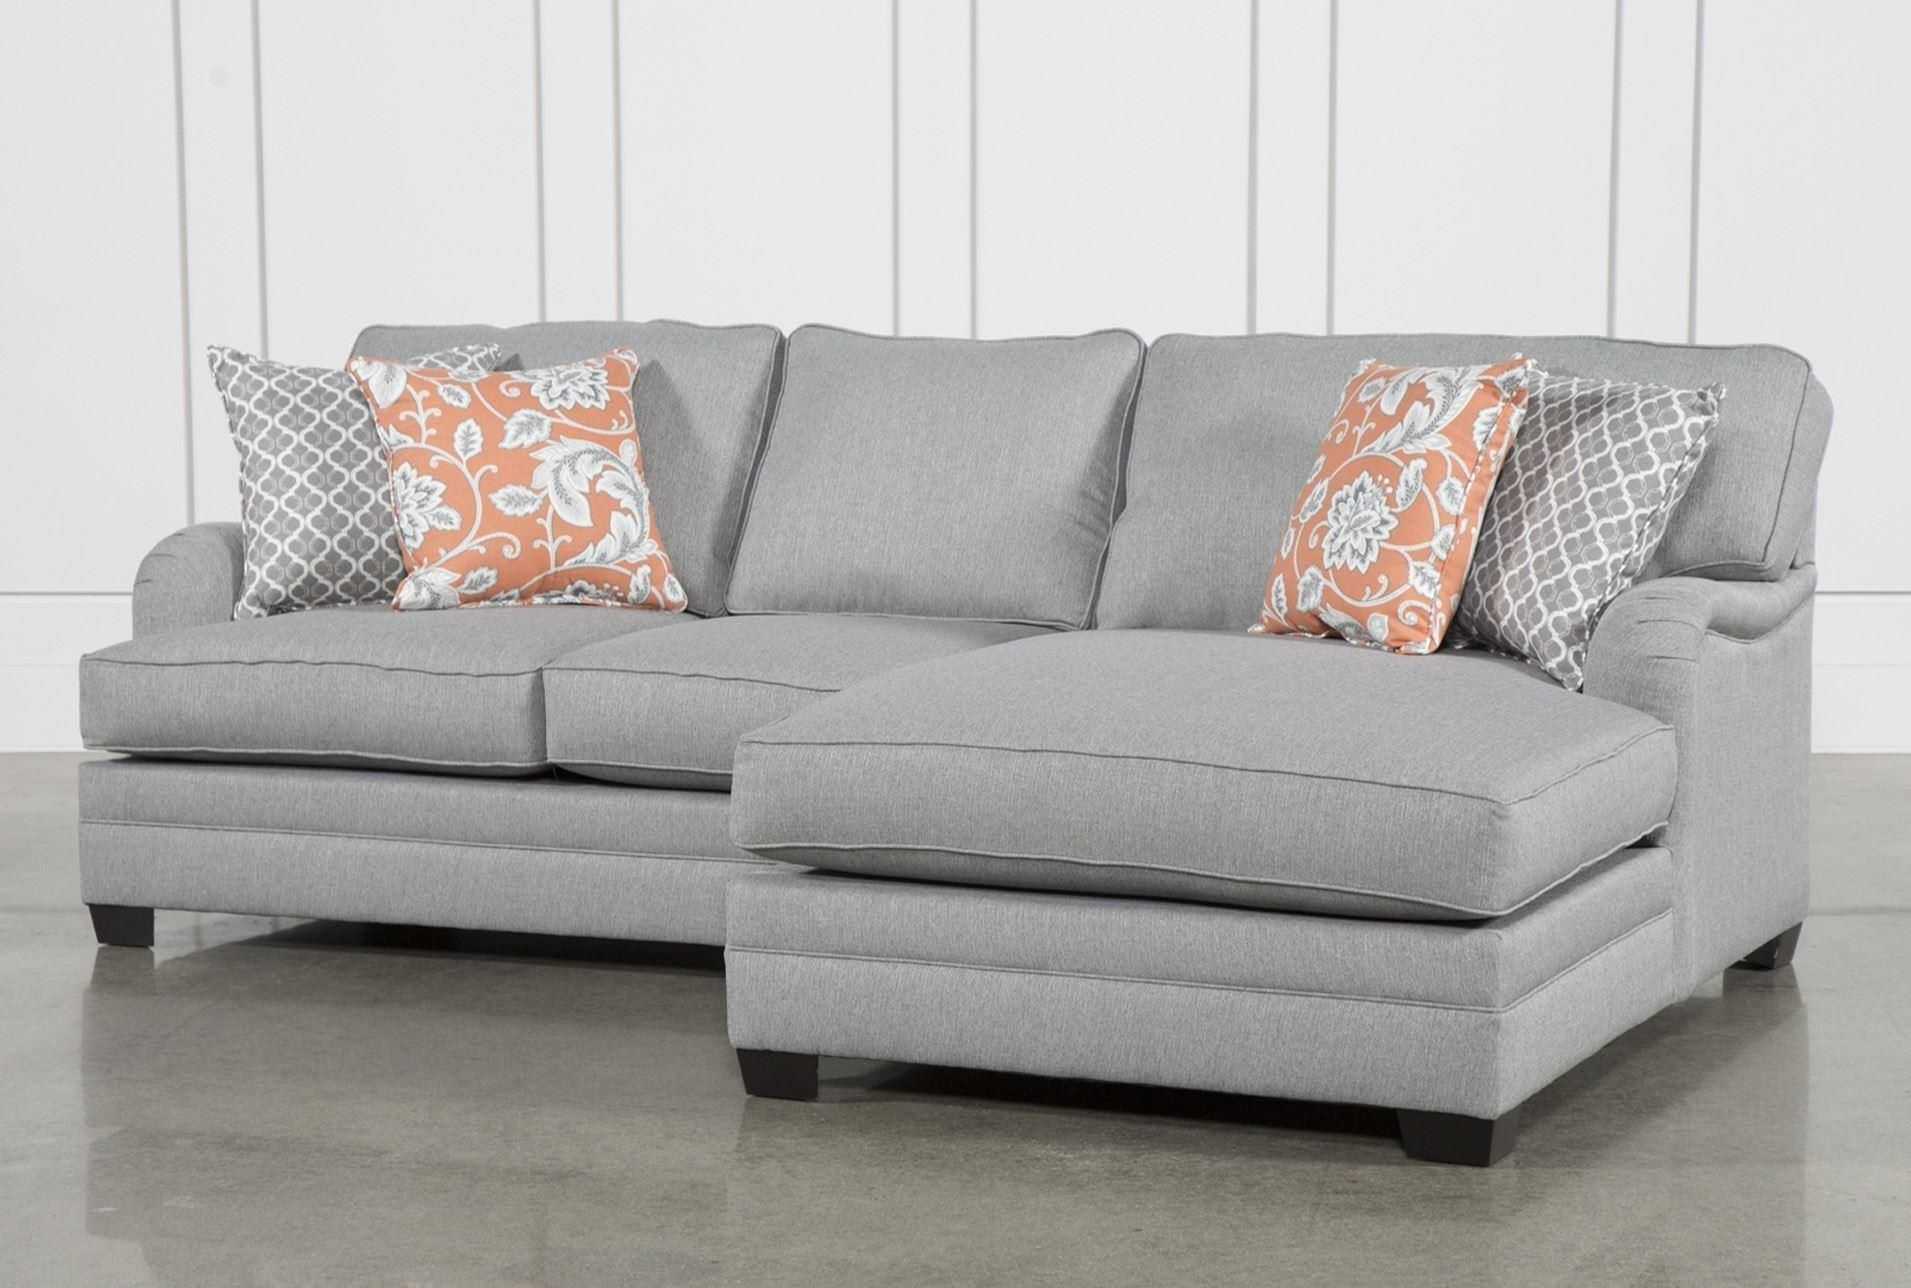 Marissa 2 Piece Sectional W/raf Chaise | Oakdell House | Pinterest Intended For Aspen 2 Piece Sleeper Sectionals With Raf Chaise (View 5 of 25)